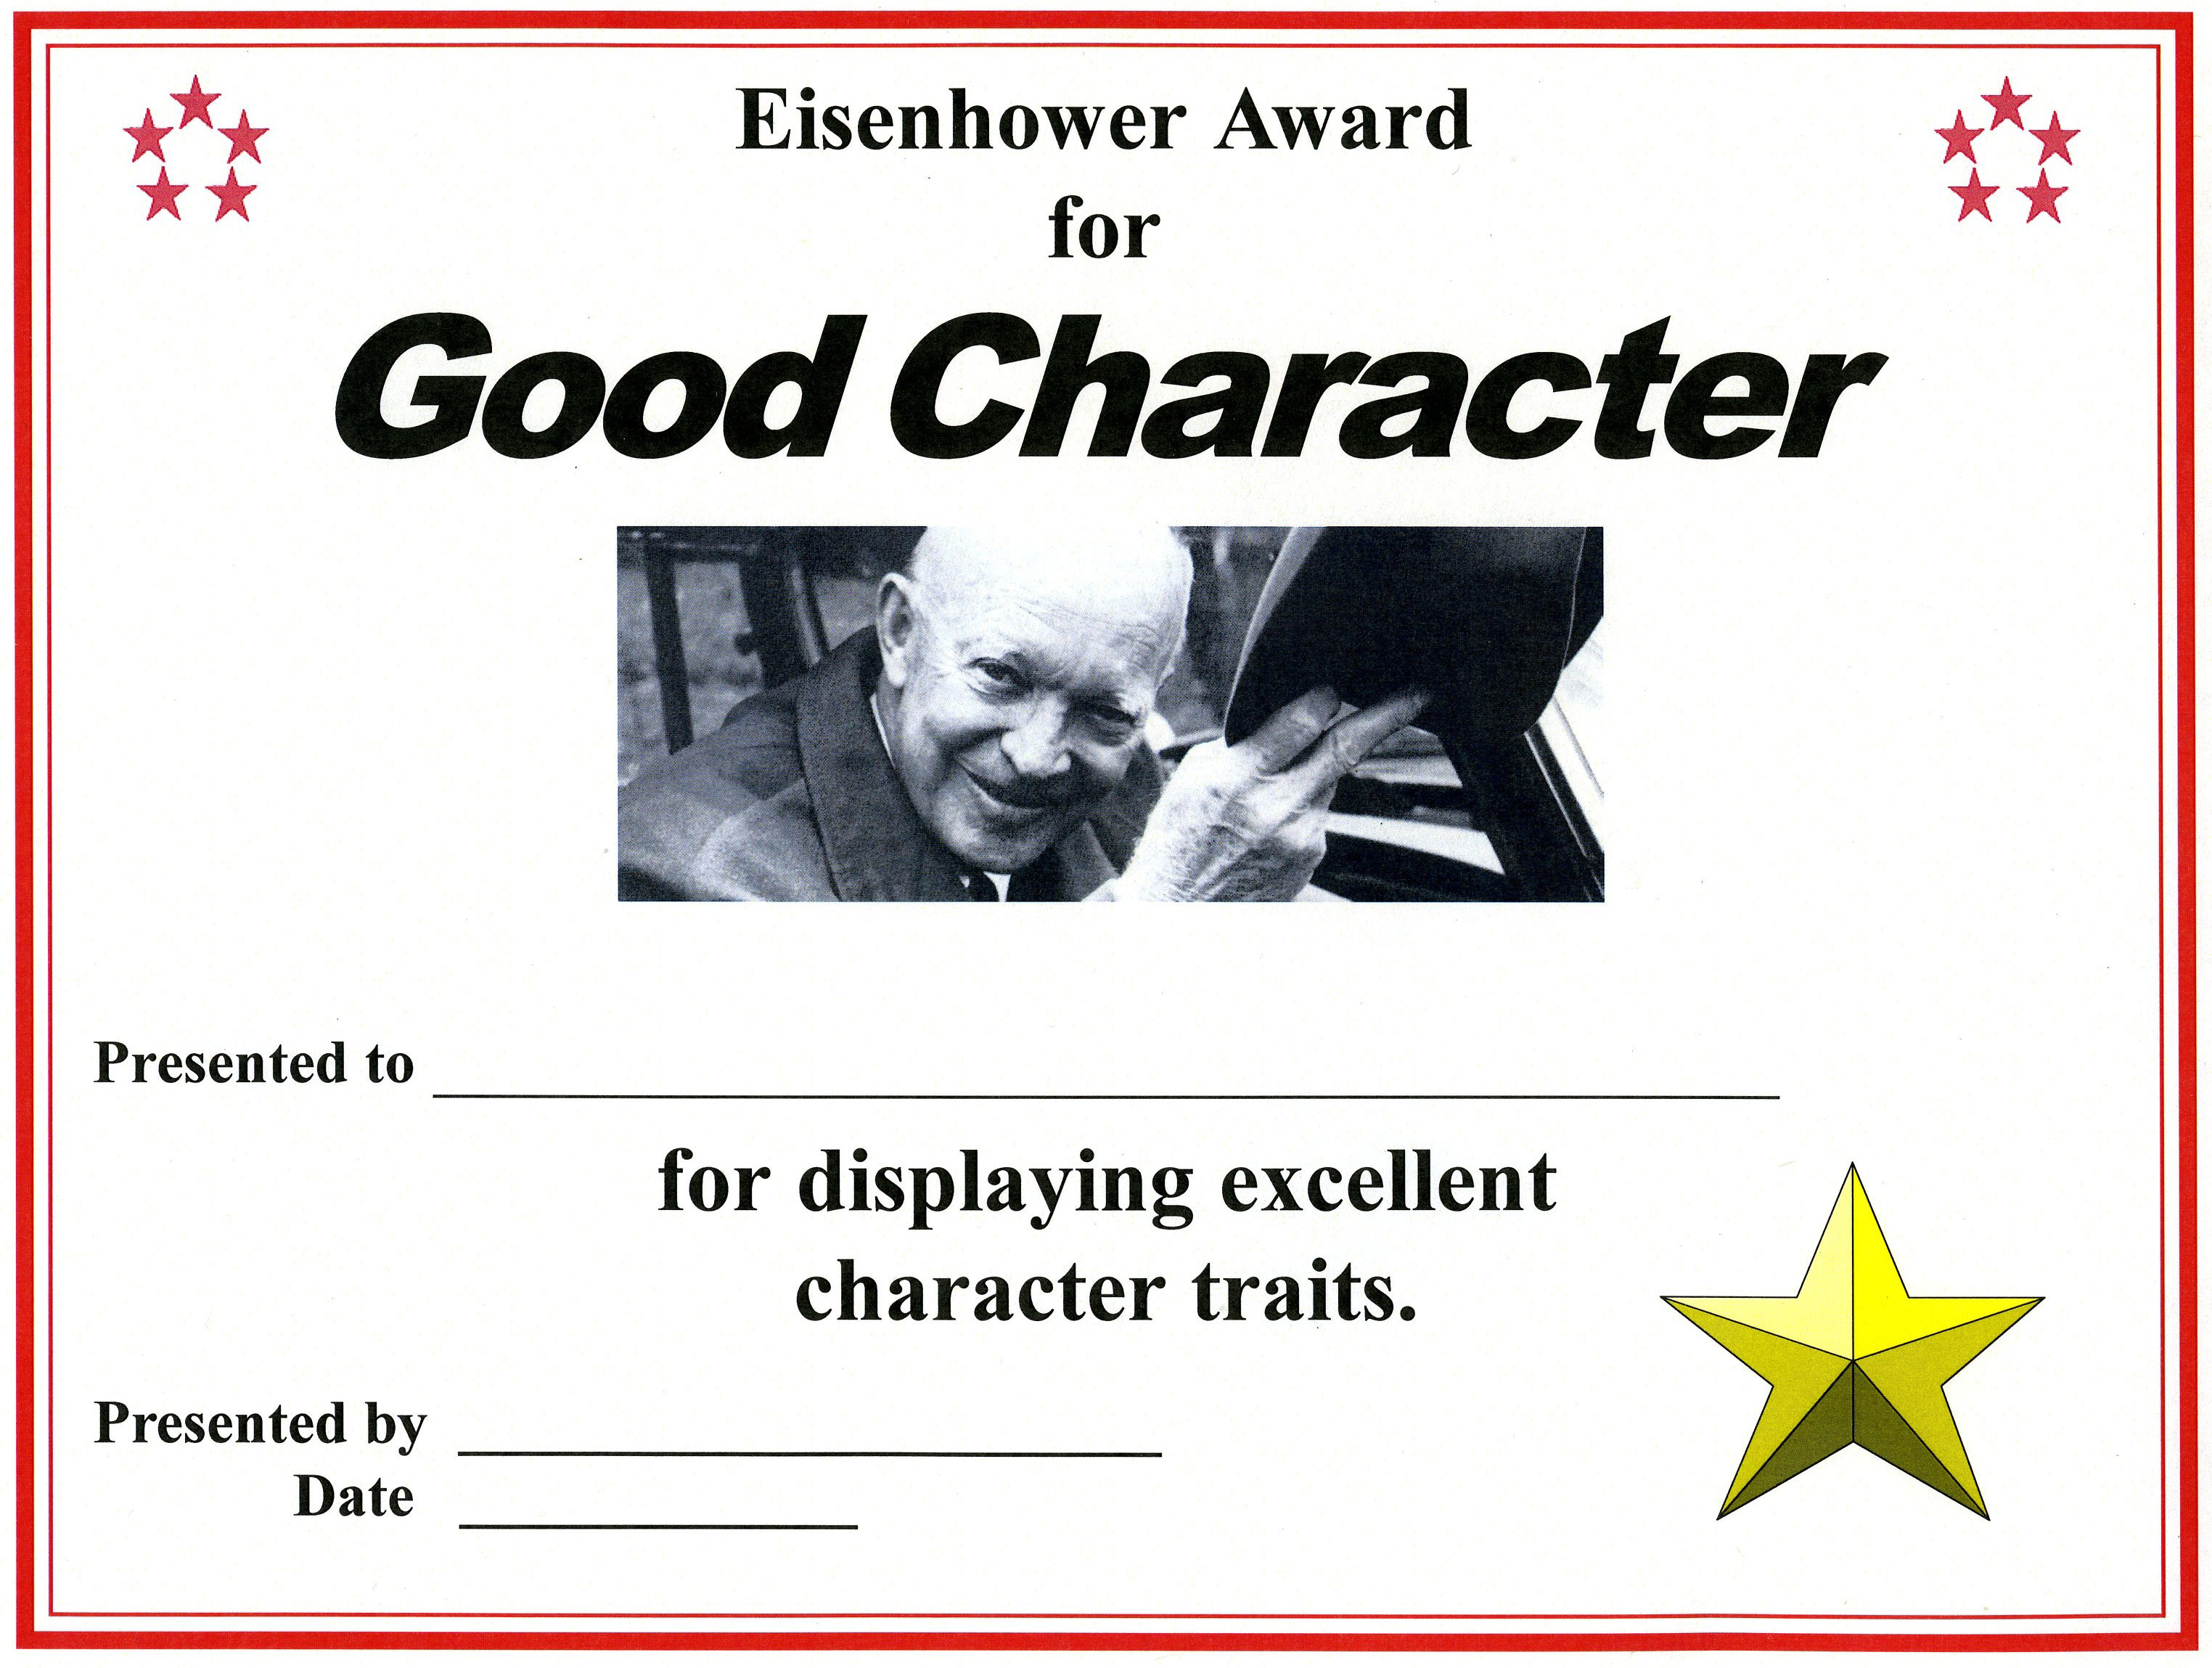 Essay on leadership service and character